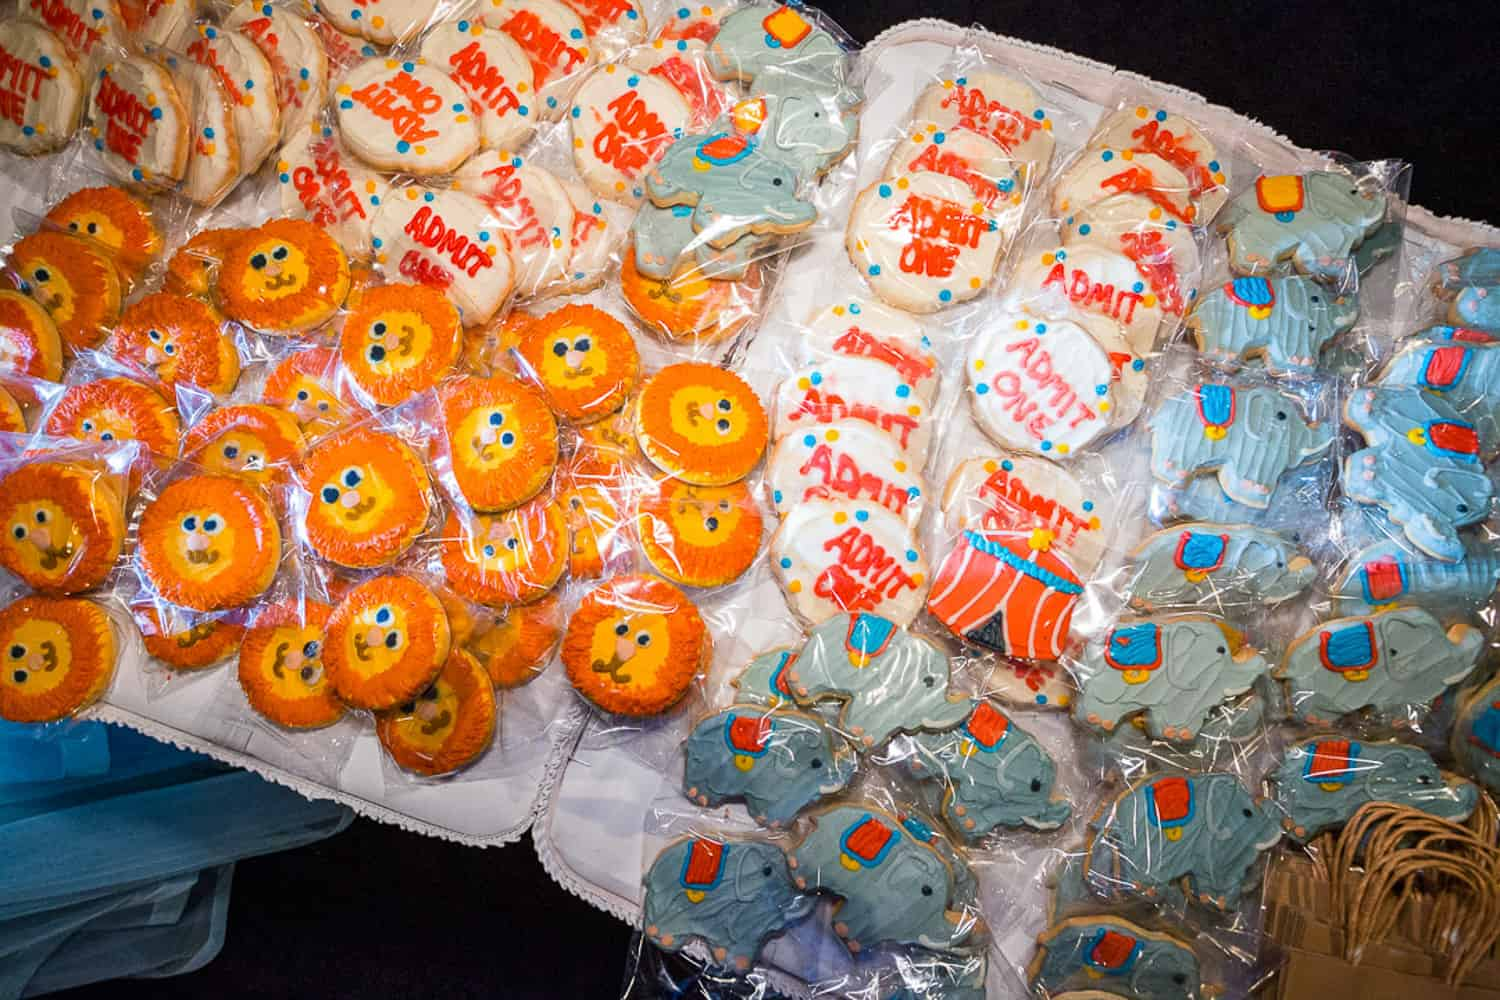 Cookies at a charity event.